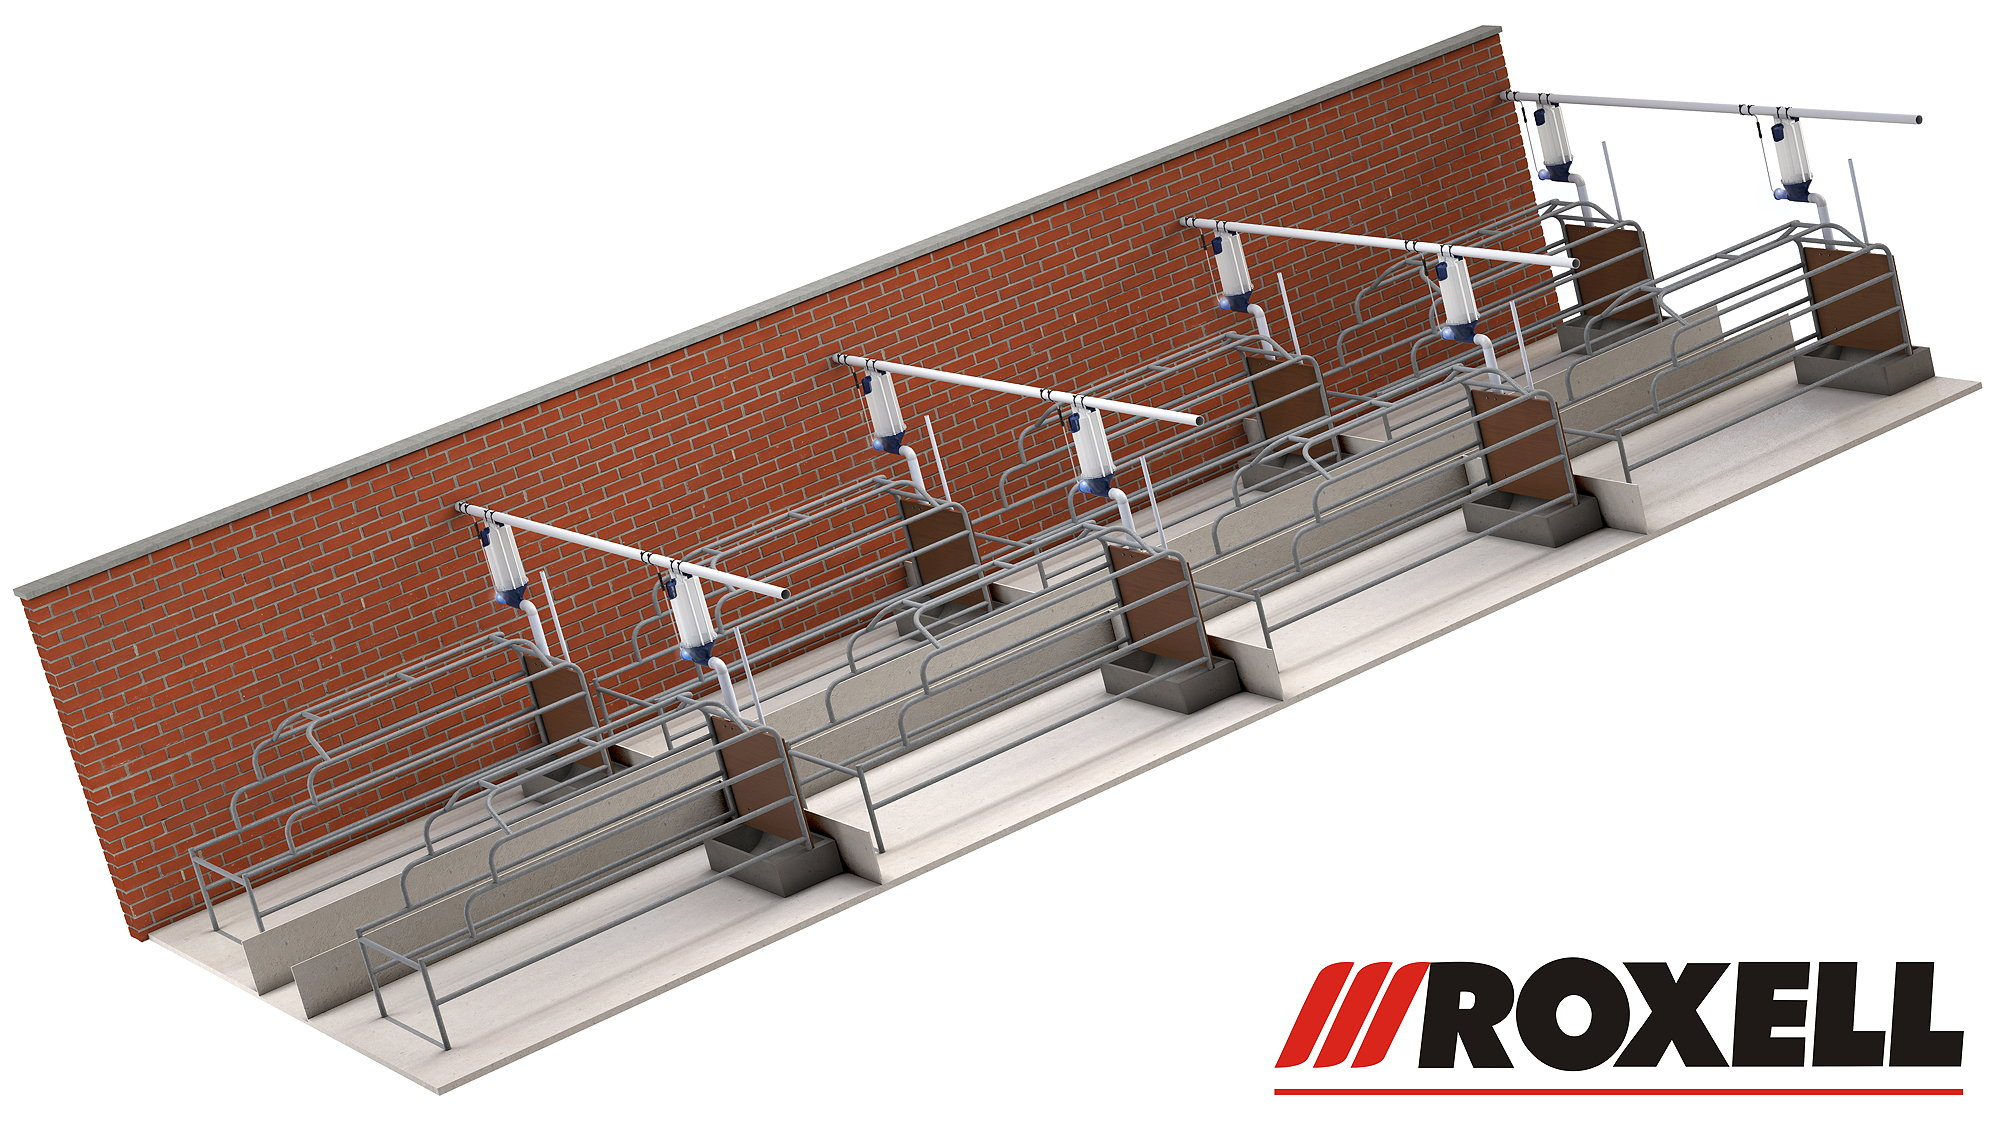 Roxell has introduced the new Fidos farrowing smart feed dispenser especially for lactating sows